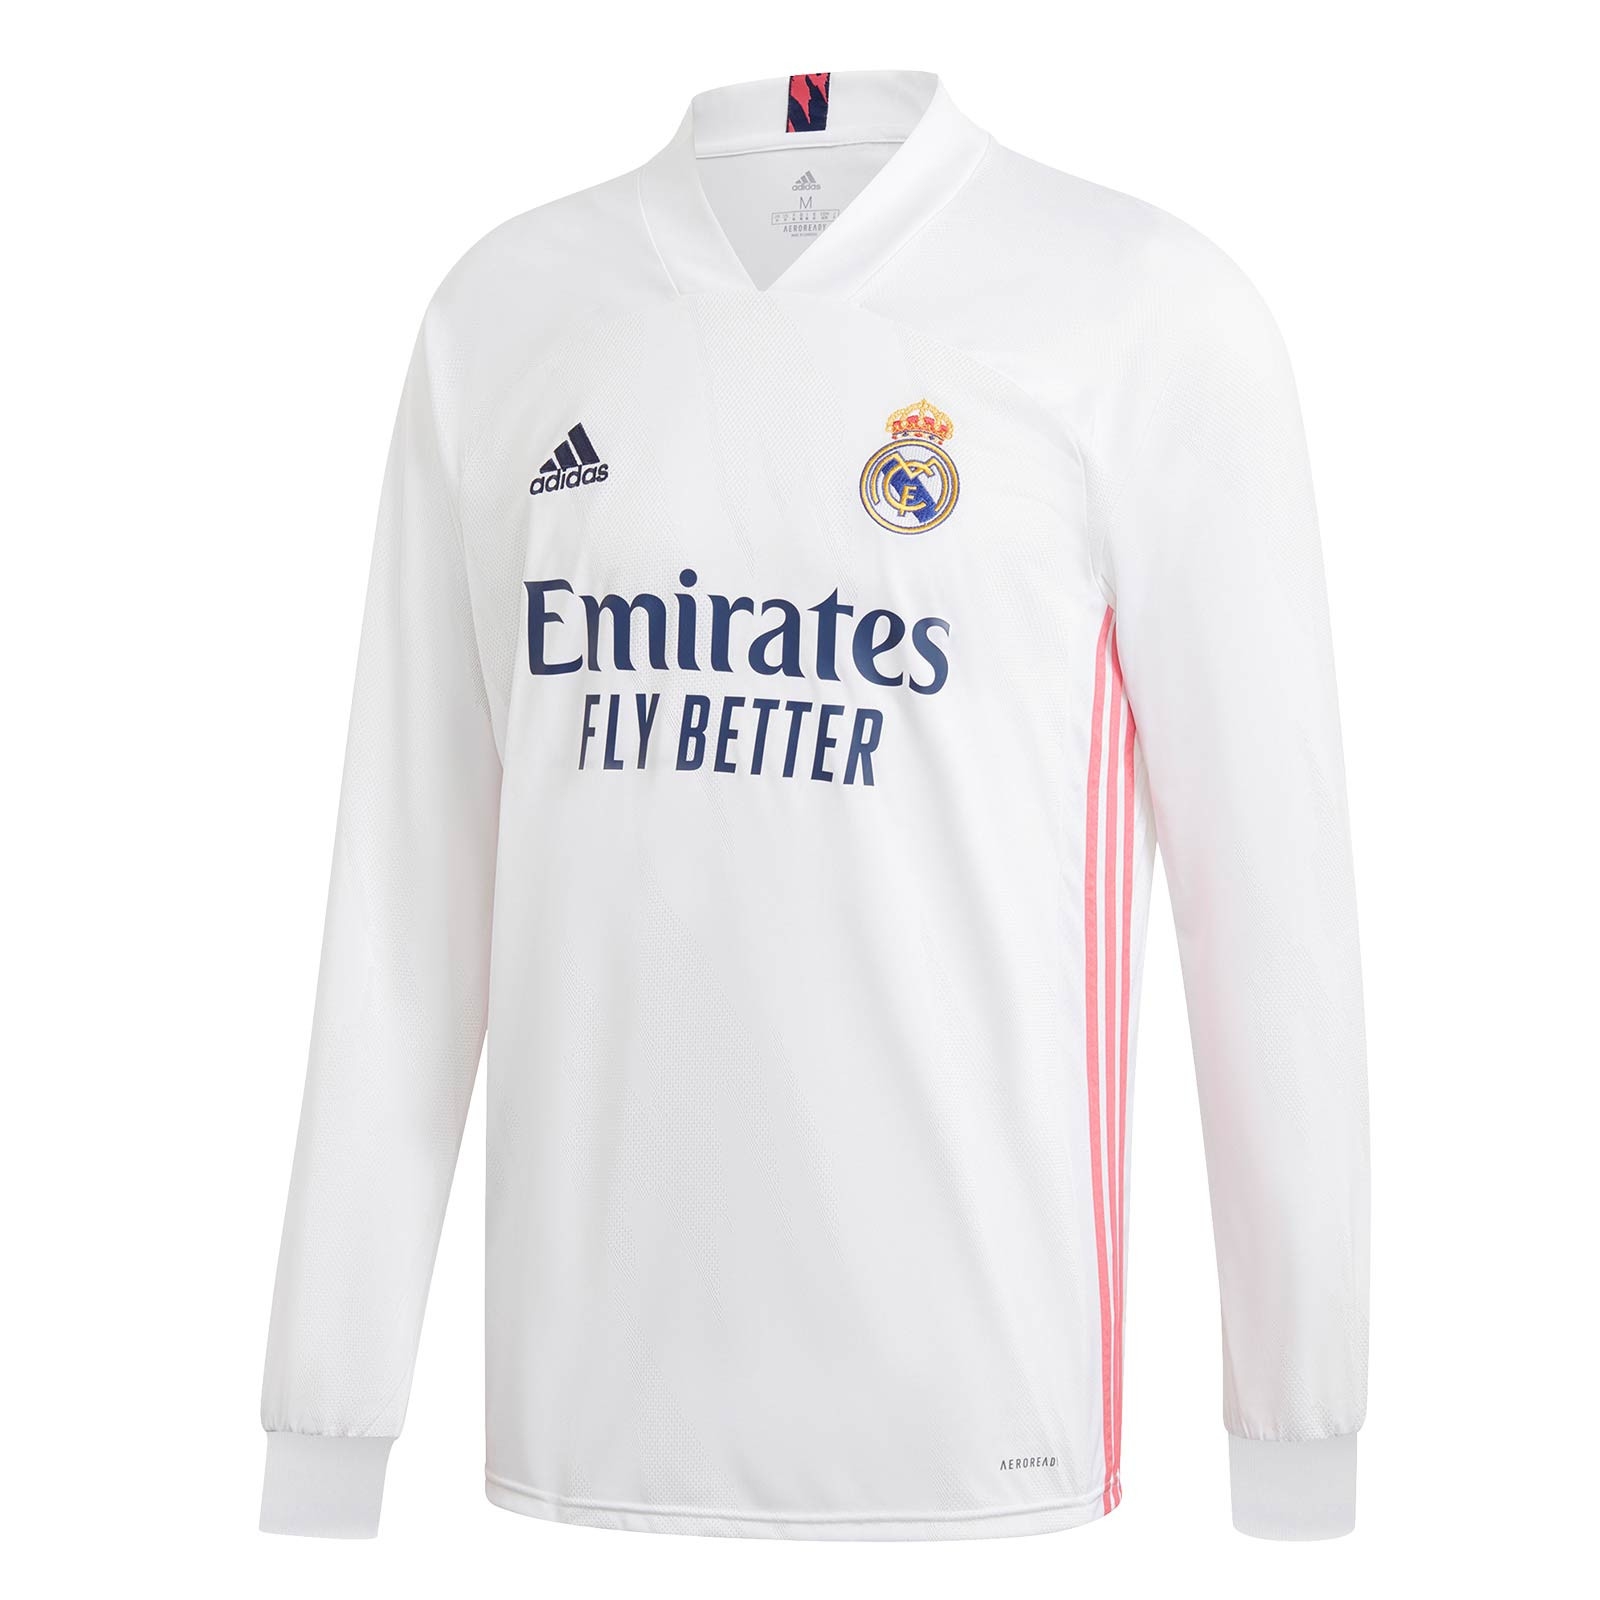 Camiseta manga larga adidas Real Madrid 2020 2021 - futbolmania